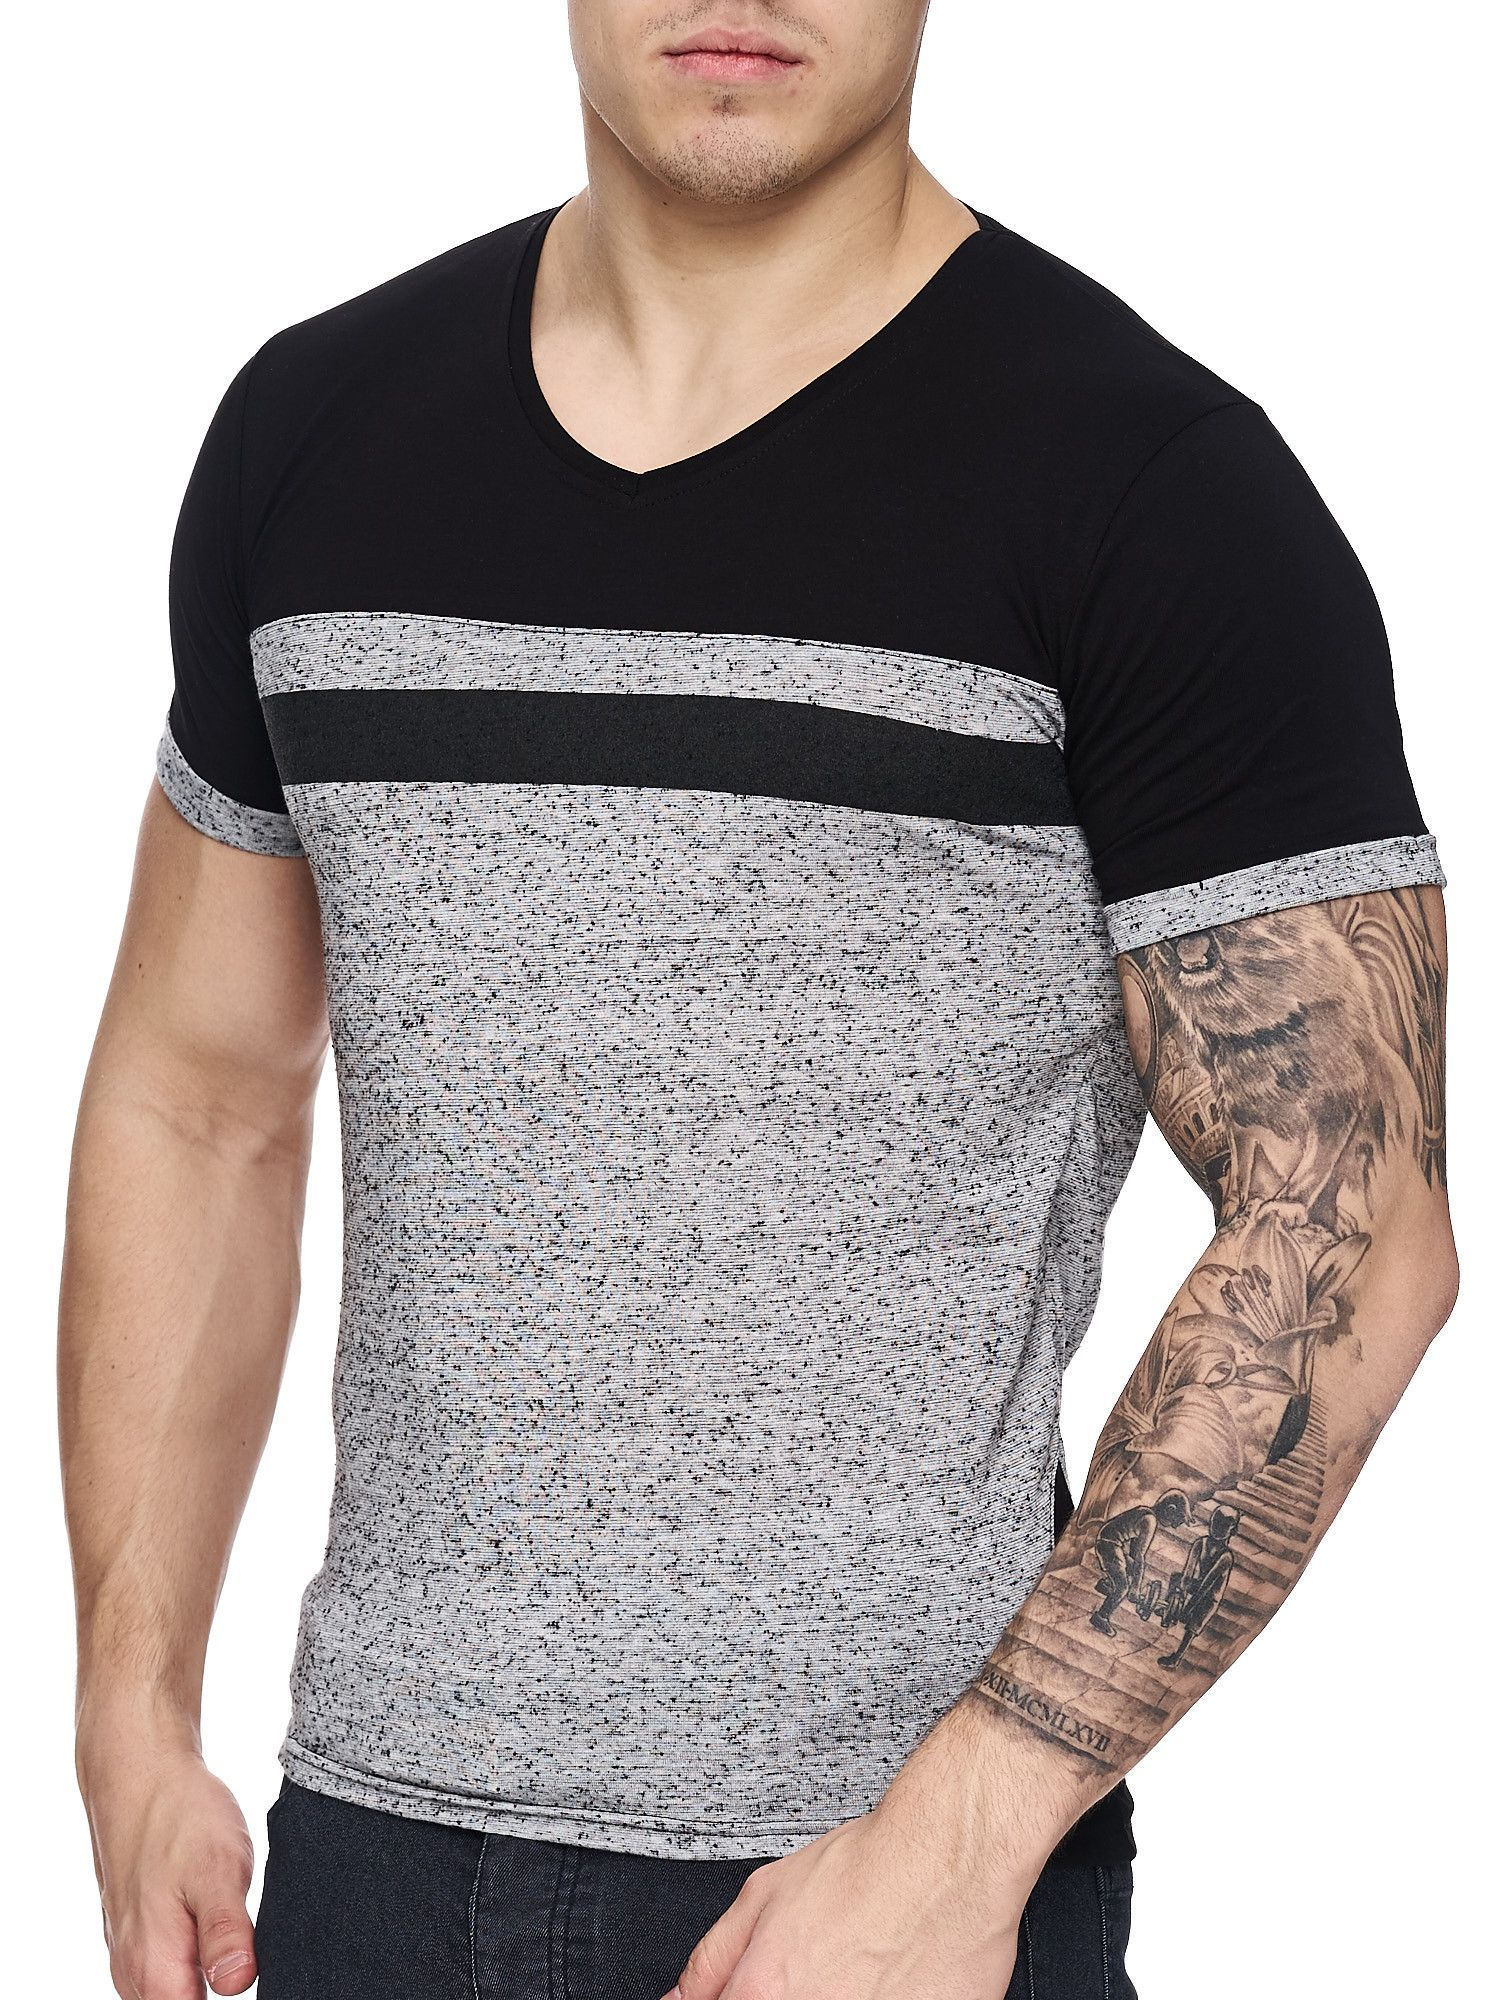 K&D Men Cross Band V-Neck T-shirt - Gray